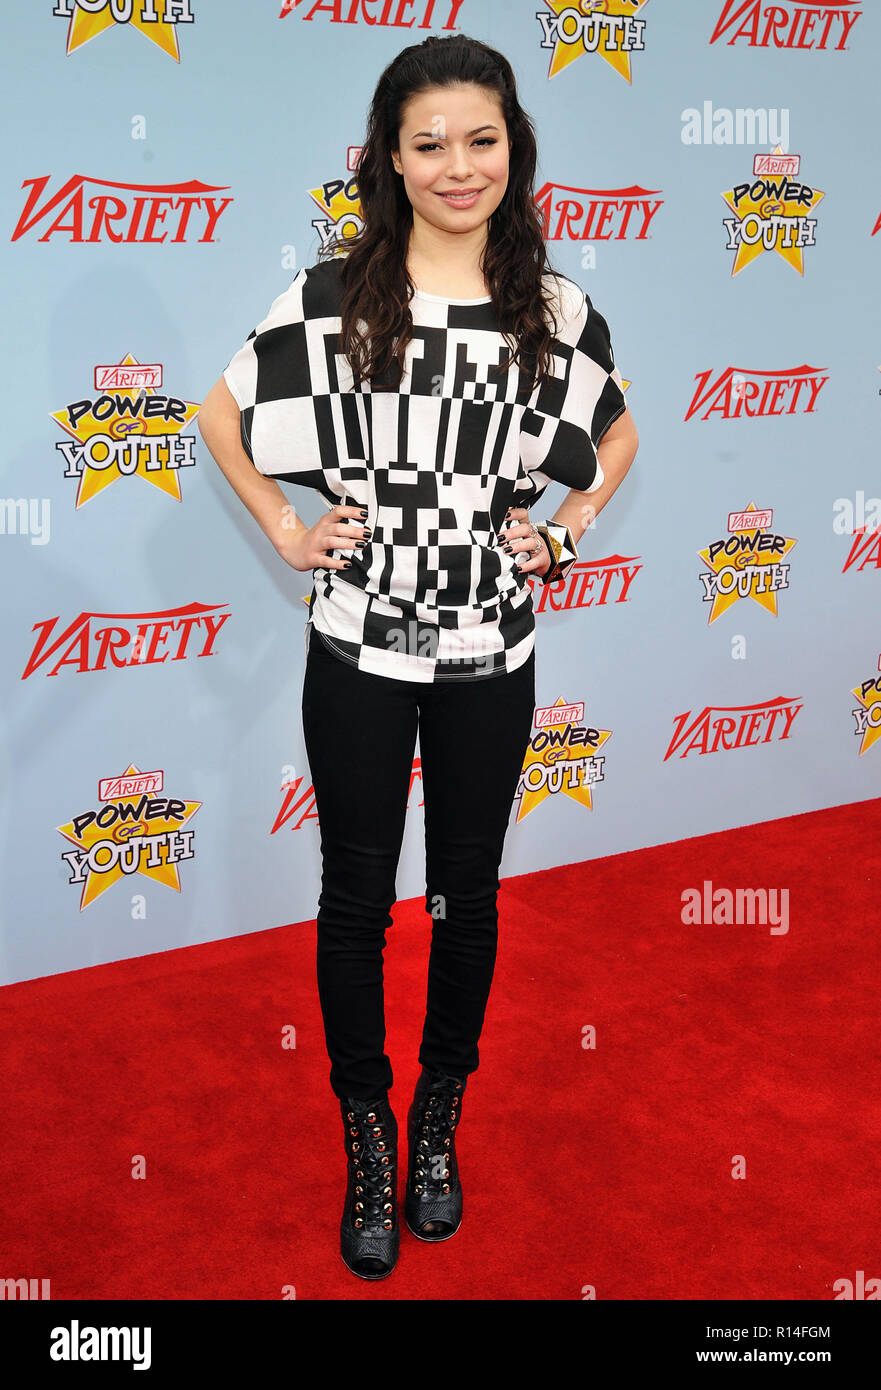 Miranda Cosgrove_49 - Power Of Youth Event on the Paramount Lot In Los Angeles.Miranda Cosgrove_49 Red Carpet Event, Vertical, USA, Film Industry, Celebrities,  Photography, Bestof, Arts Culture and Entertainment, Topix Celebrities fashion /  Vertical, Best of, Event in Hollywood Life - California,  Red Carpet and backstage, USA, Film Industry, Celebrities,  movie celebrities, TV celebrities, Music celebrities, Photography, Bestof, Arts Culture and Entertainment,  Topix, vertical, one person,, from the year , 2009, inquiry tsuni@Gamma-USA.com Fashion - Full Length - Stock Image